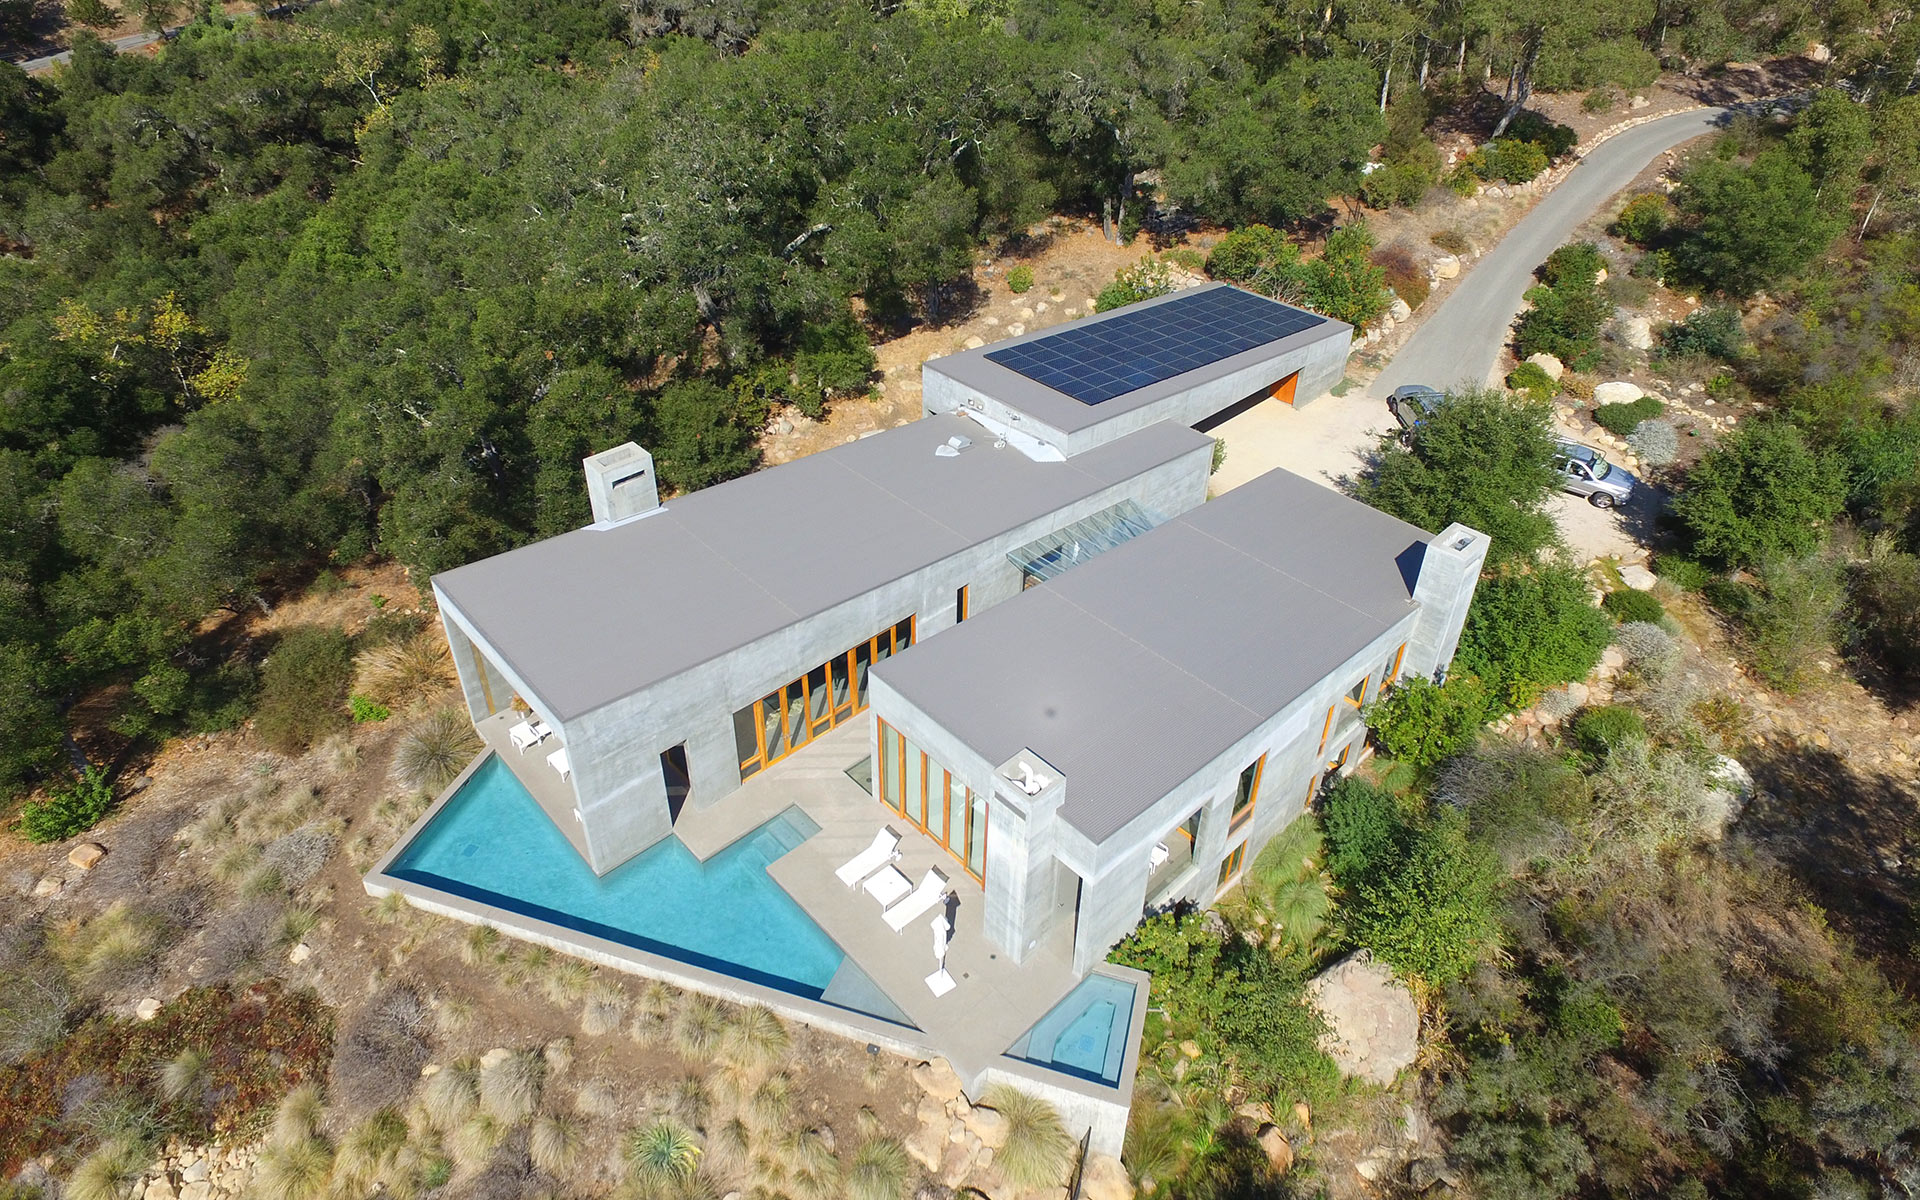 Image: A contemporary home, Montecito solar array installed by Good Energy Solar, the premier local Santa Barbara solar installer